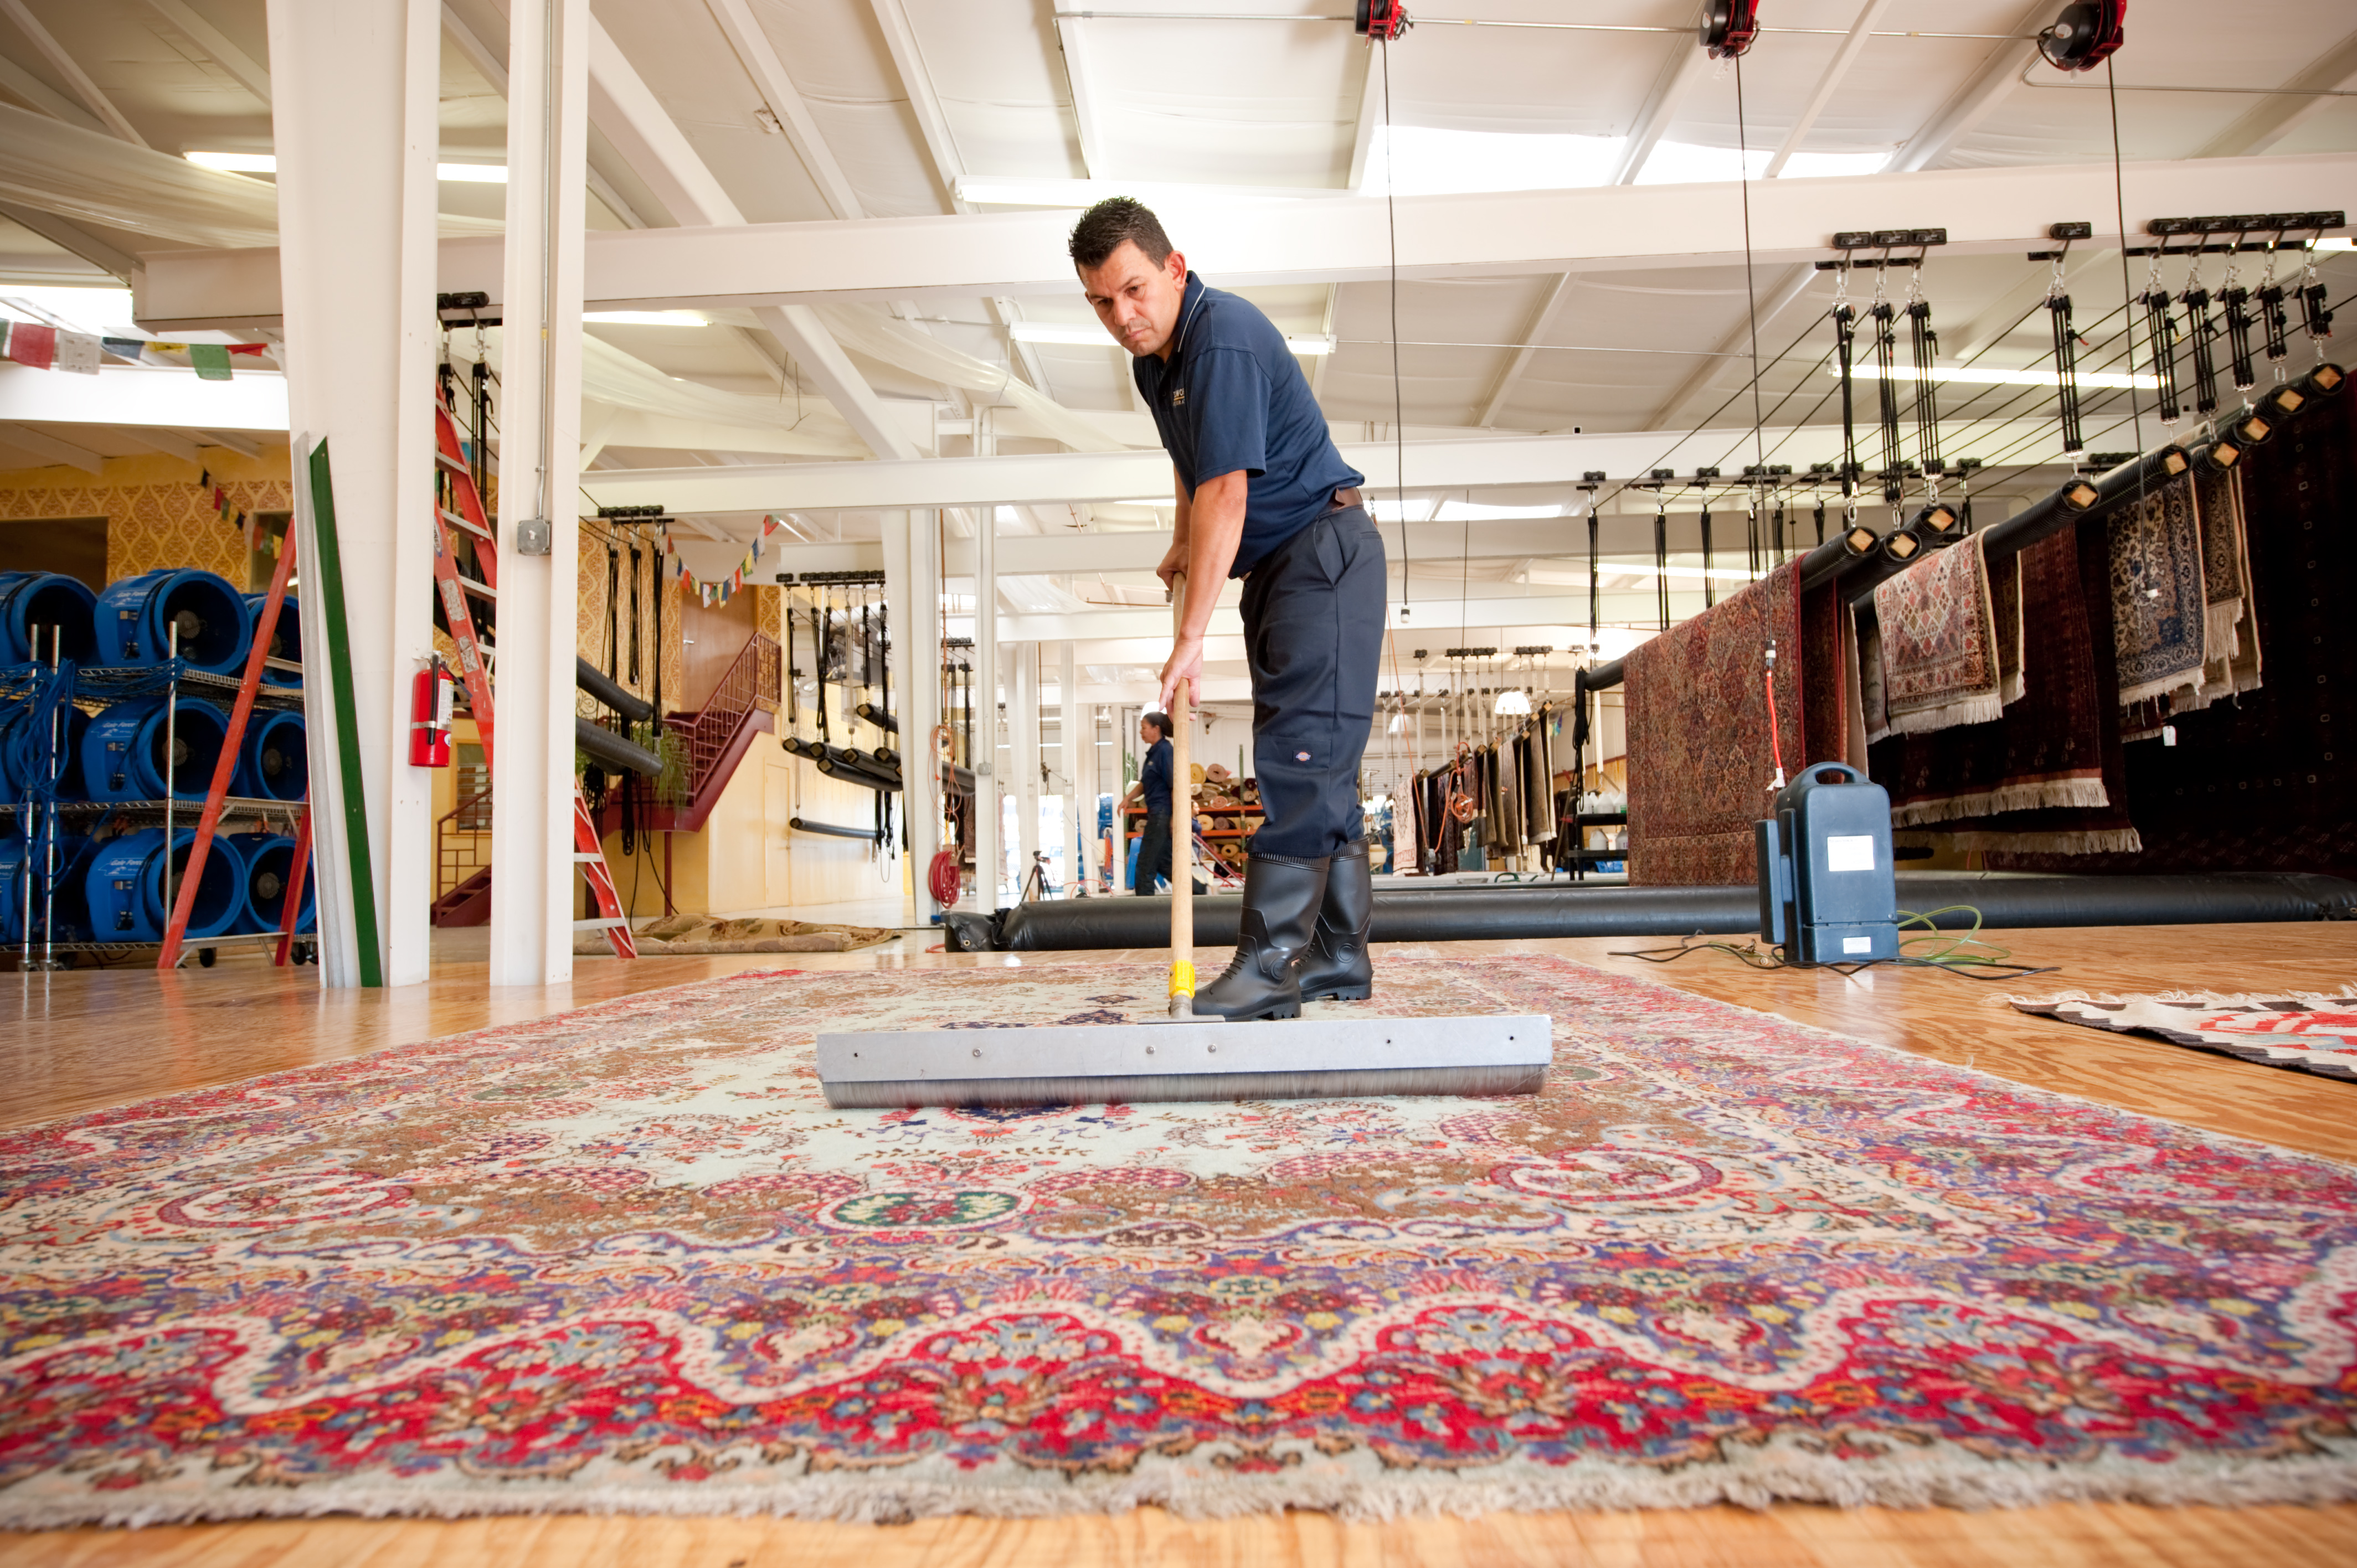 Area Rug Cleaning - Leave It To The